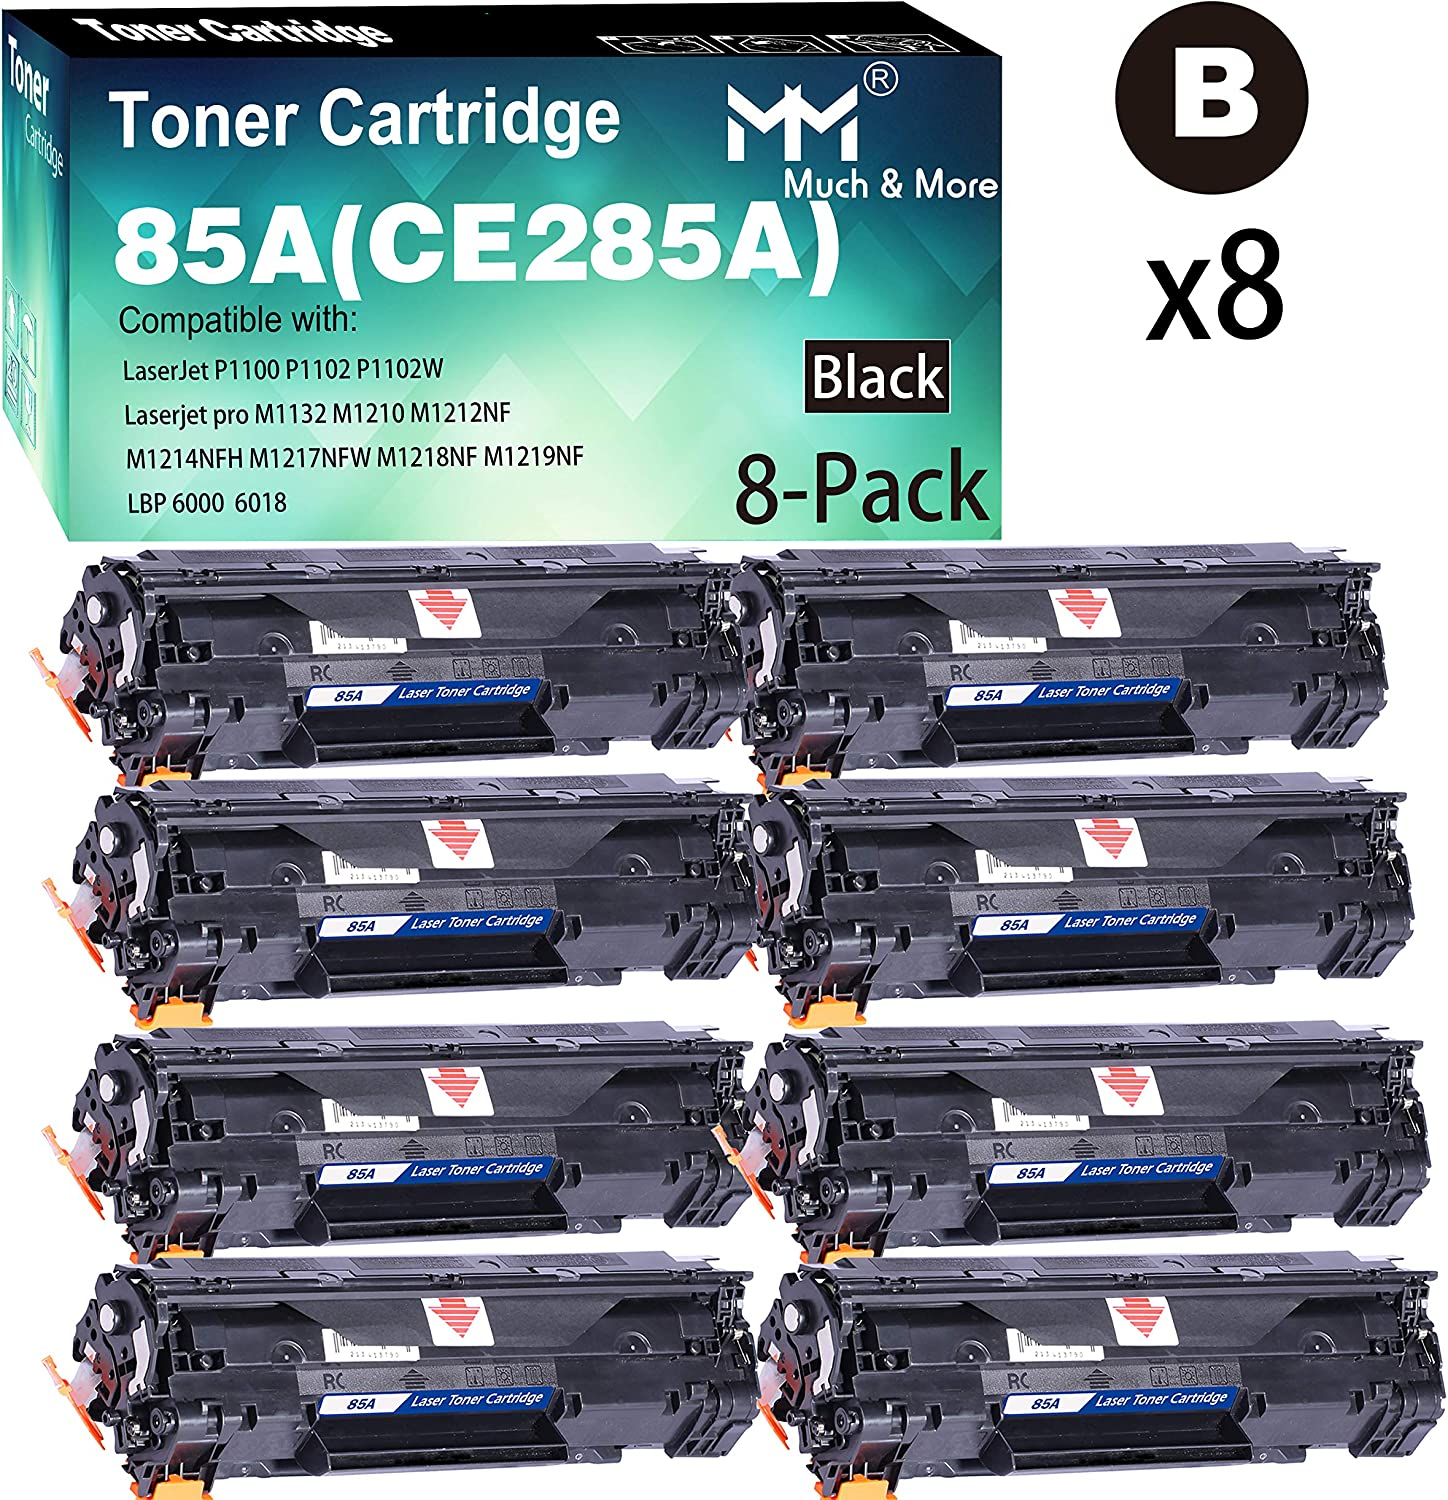 (8-Pack) Compatible 285 CE285A 285A Toner Cartridge 85A Used for HP Laserjet P1100 P1102 P1102W pro M1210 M1212NF M1219NF Printer, Sold by MuchMore